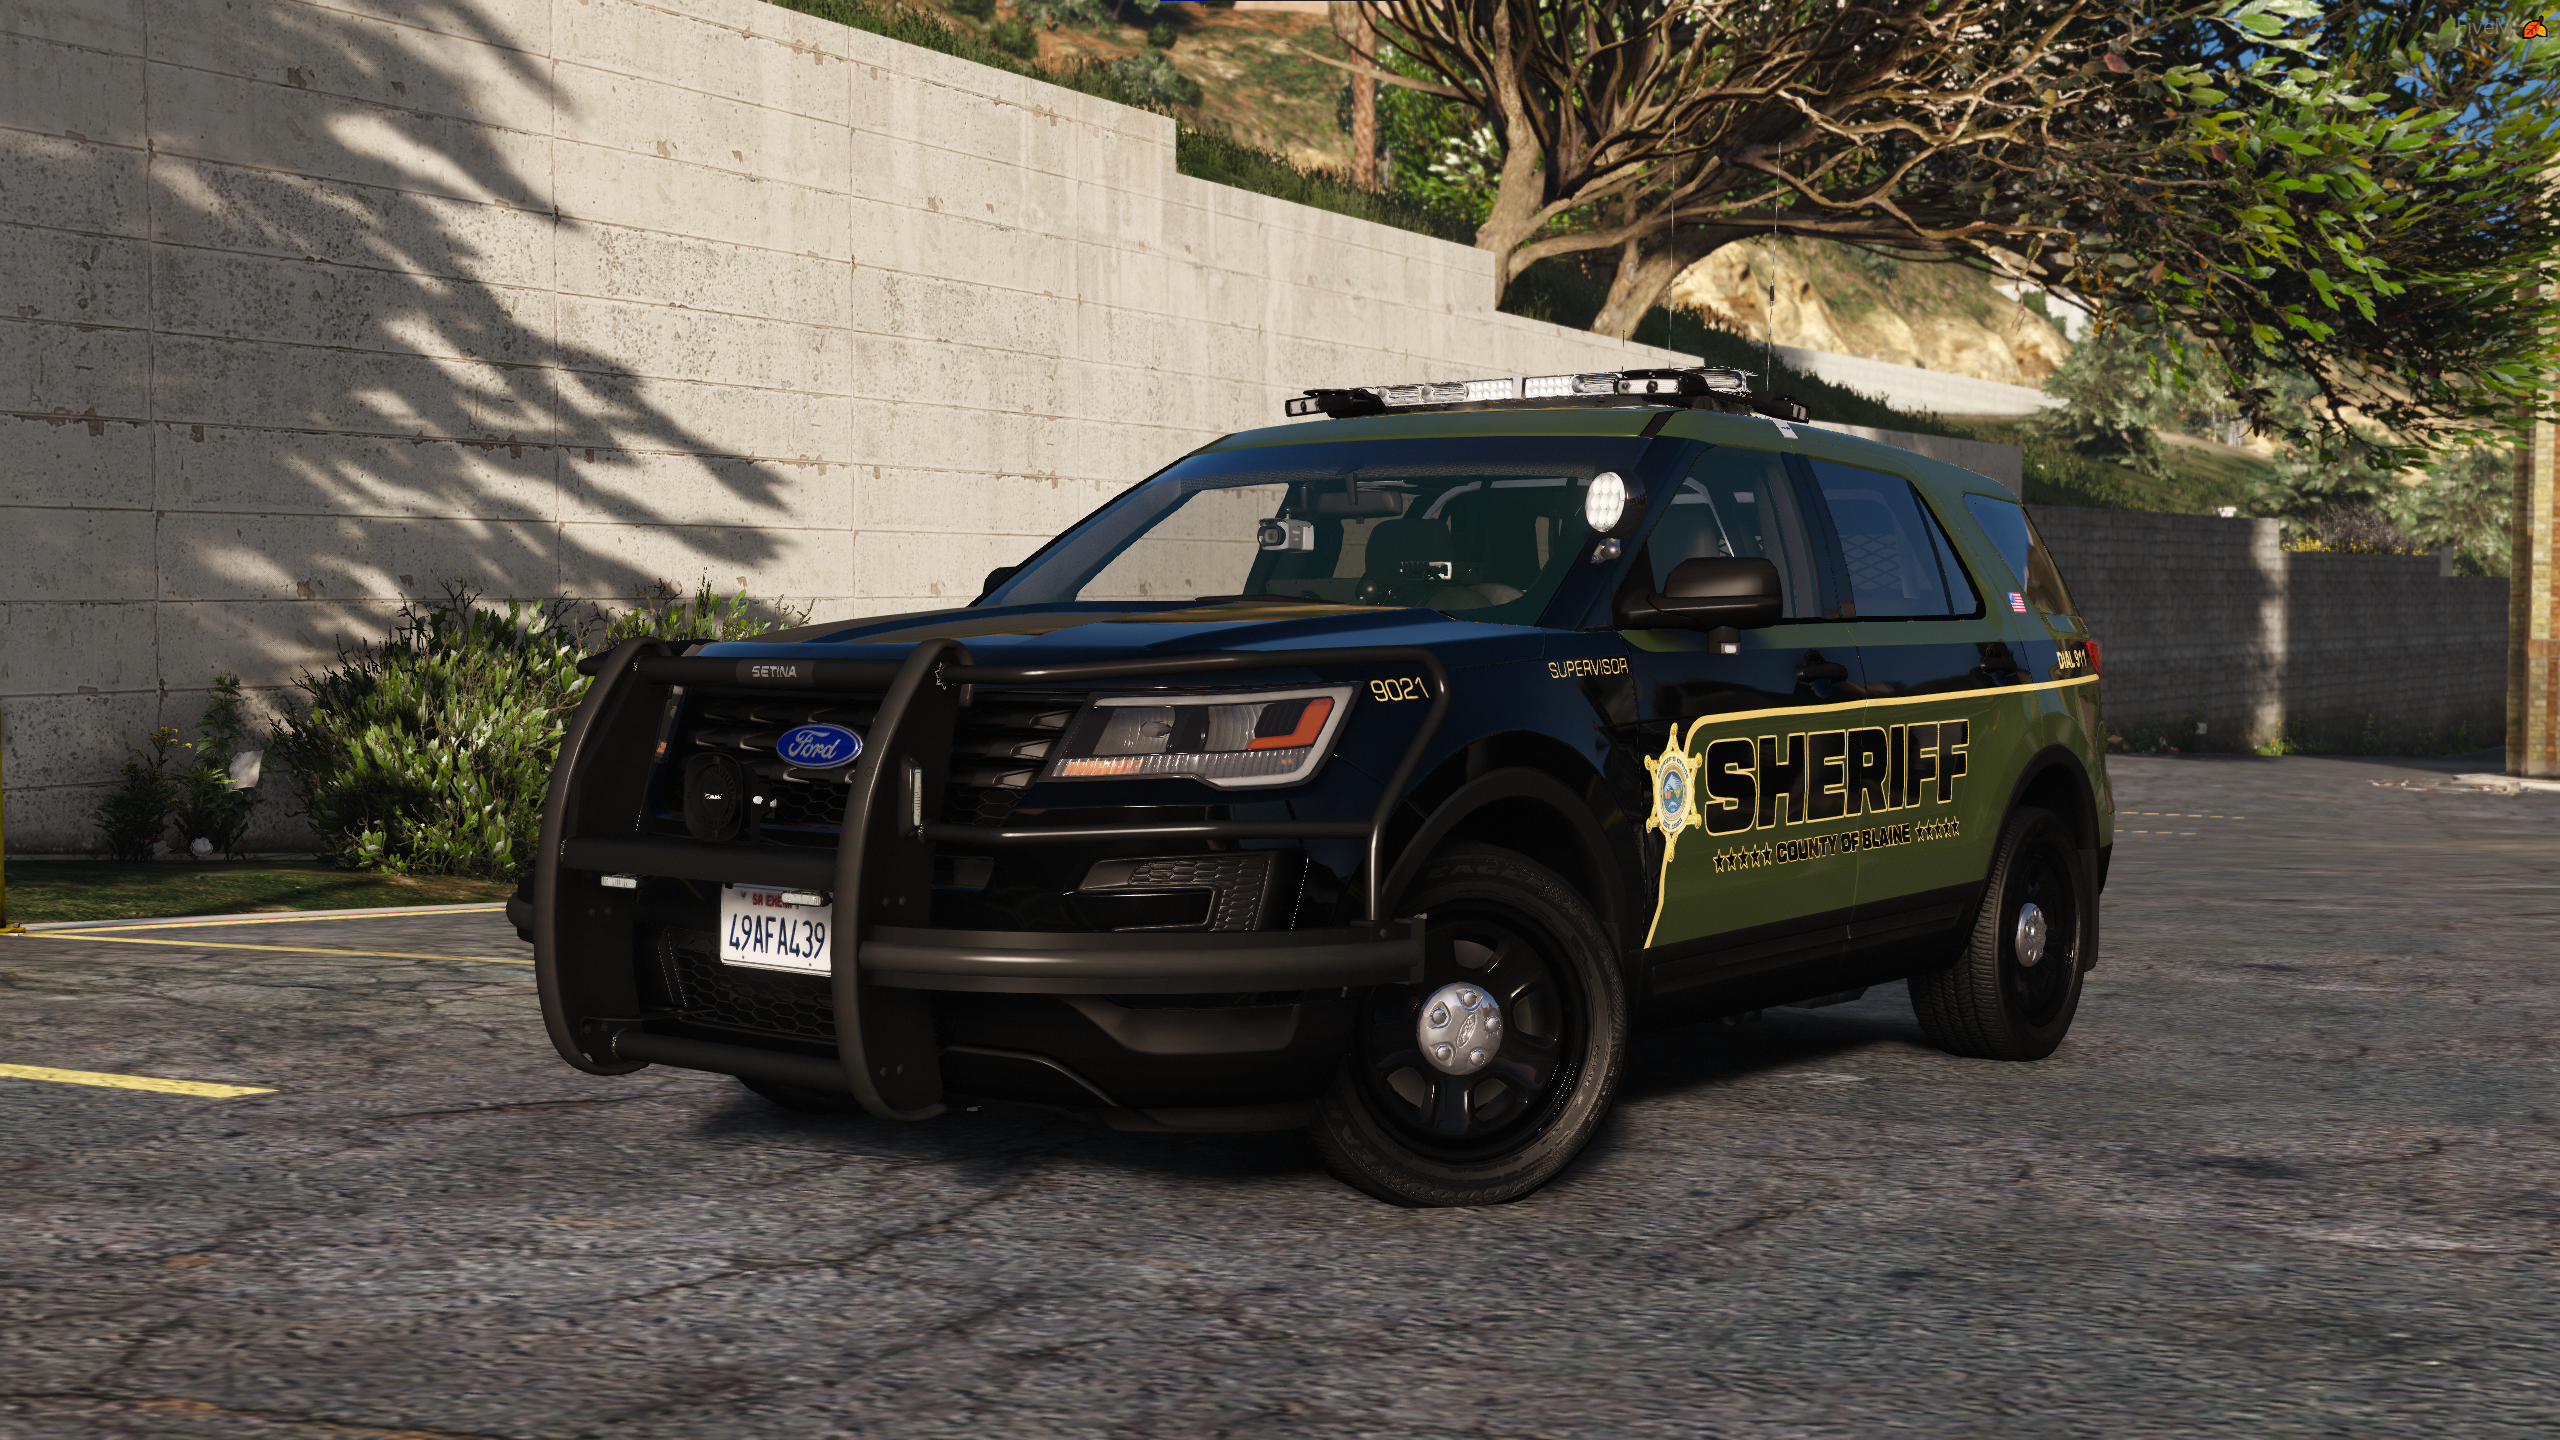 WIP Blaine County Sheriff's Livery Pack